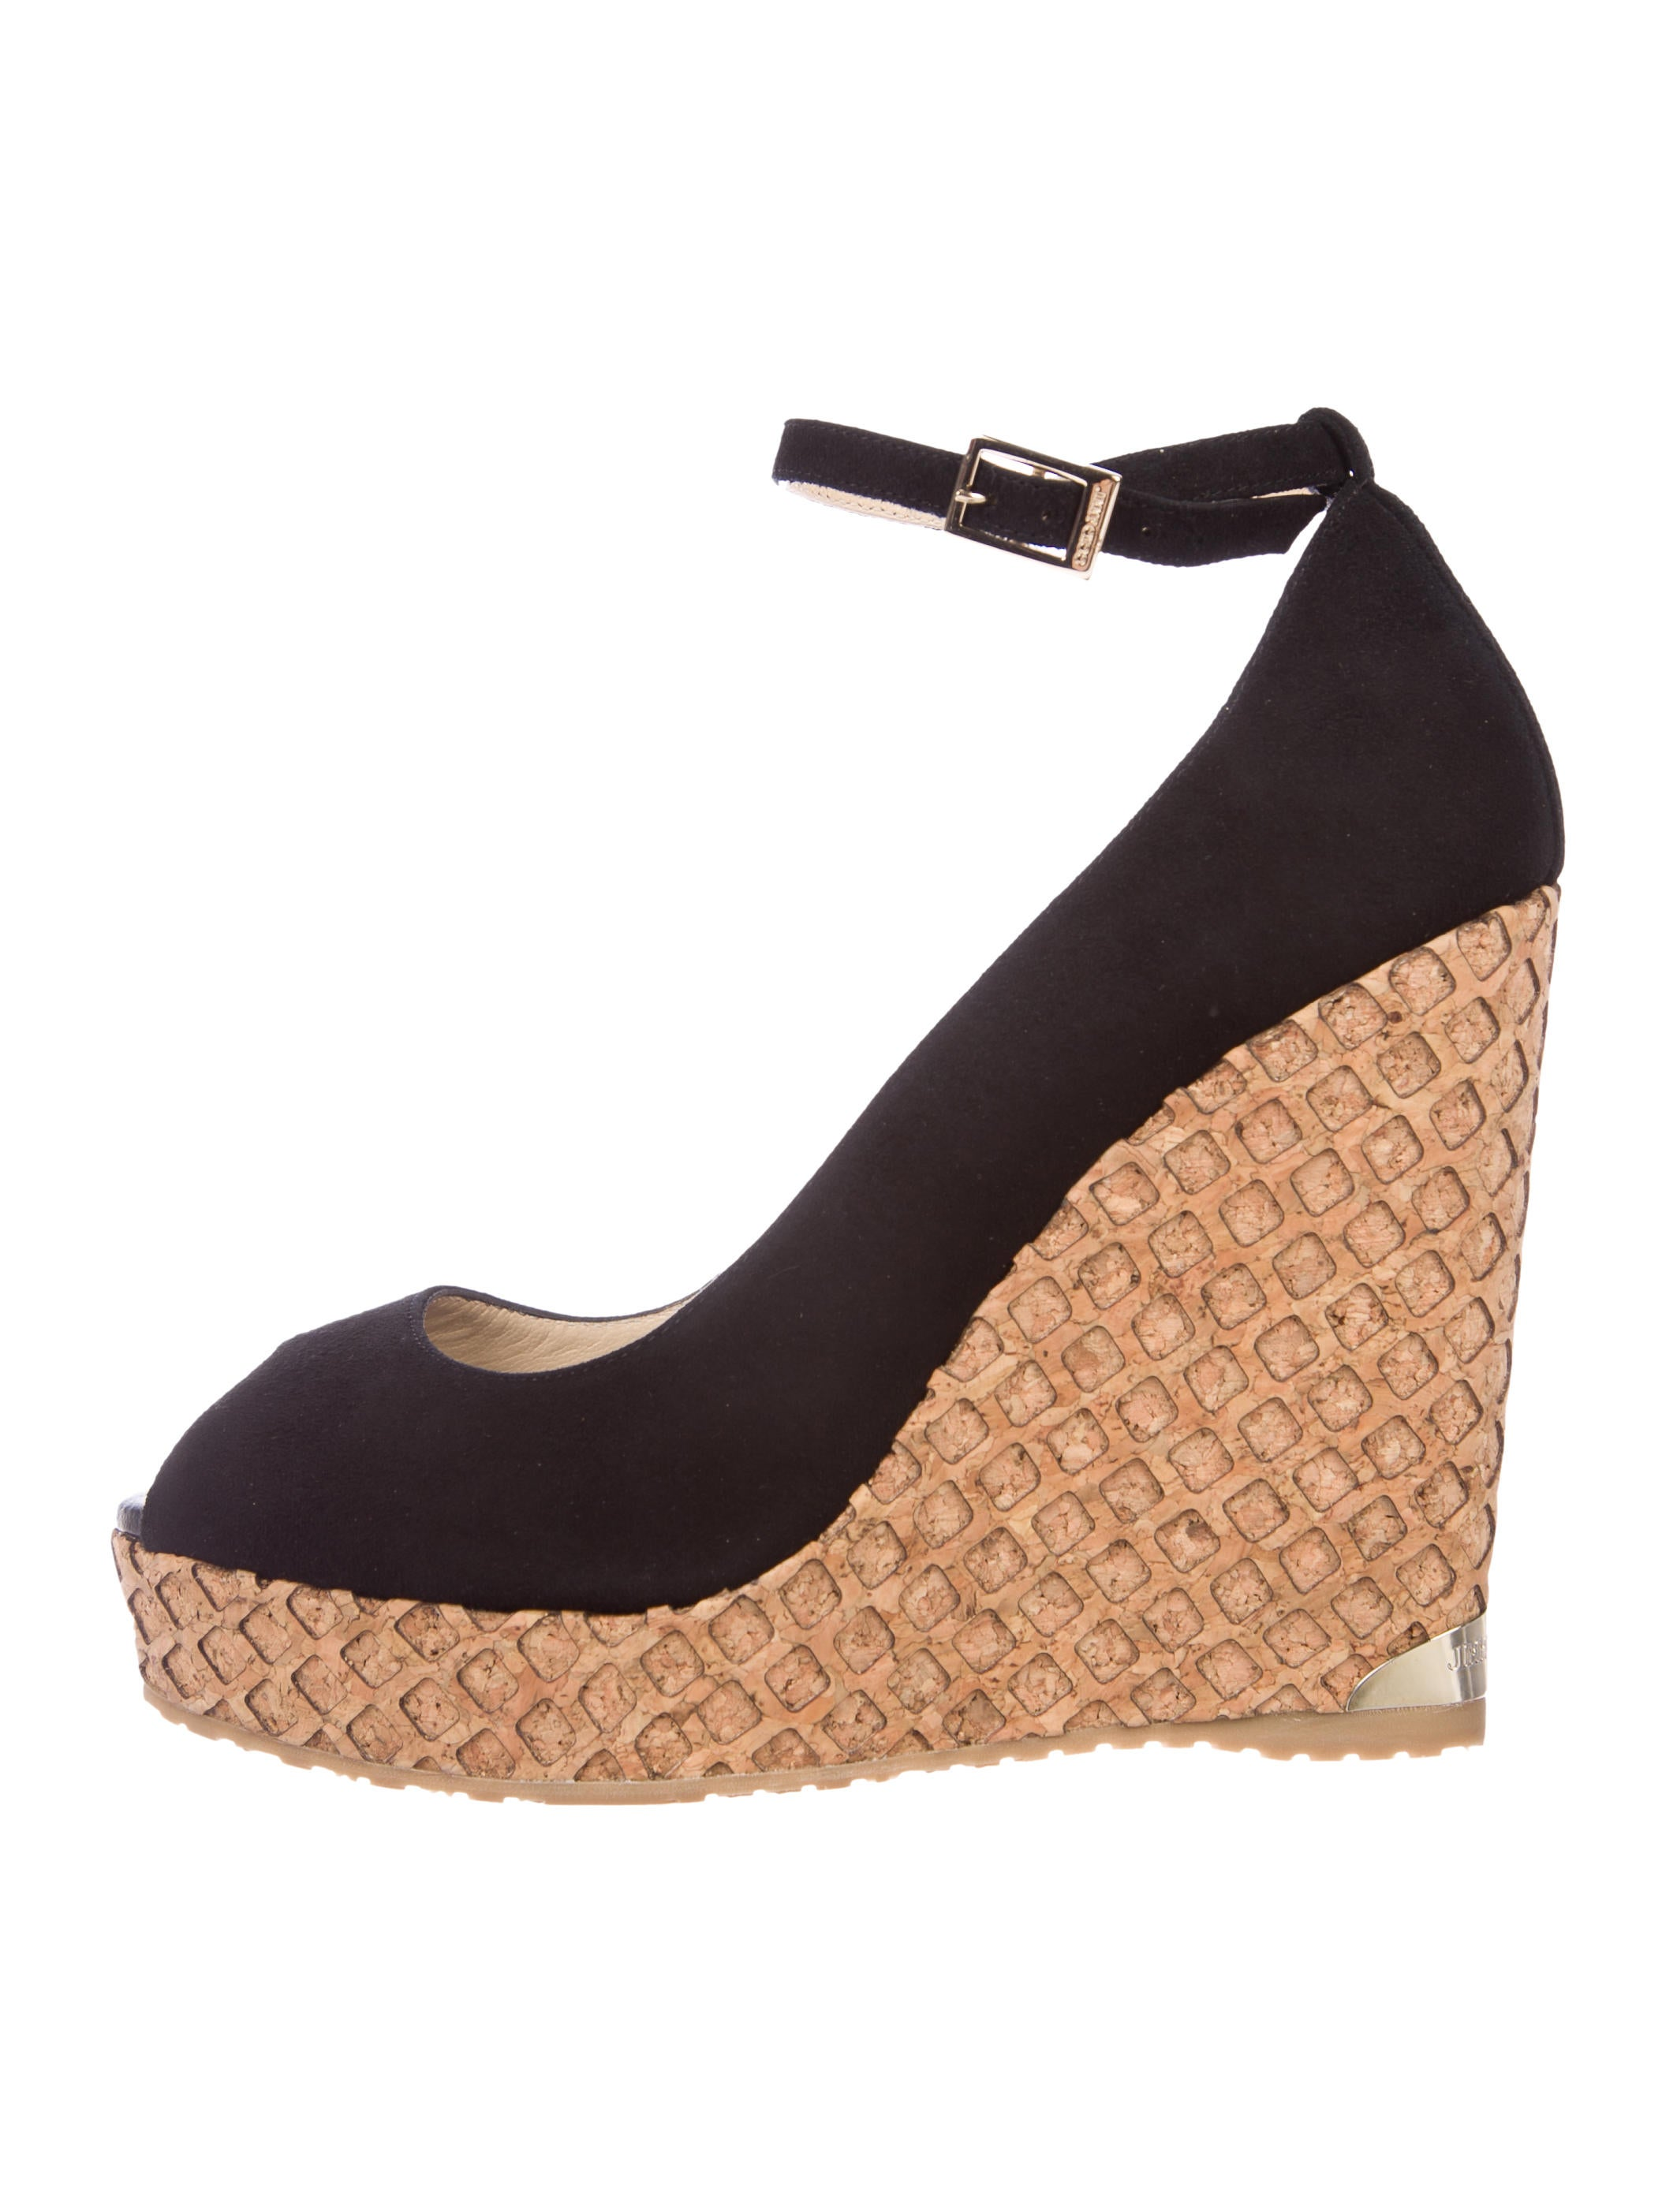 Jimmy Choo Pacific Wedge Pumps w/ Tags clearance latest collections outlet with paypal order online amazon sale online choice online cheap hot sale Gae0sp5D1f